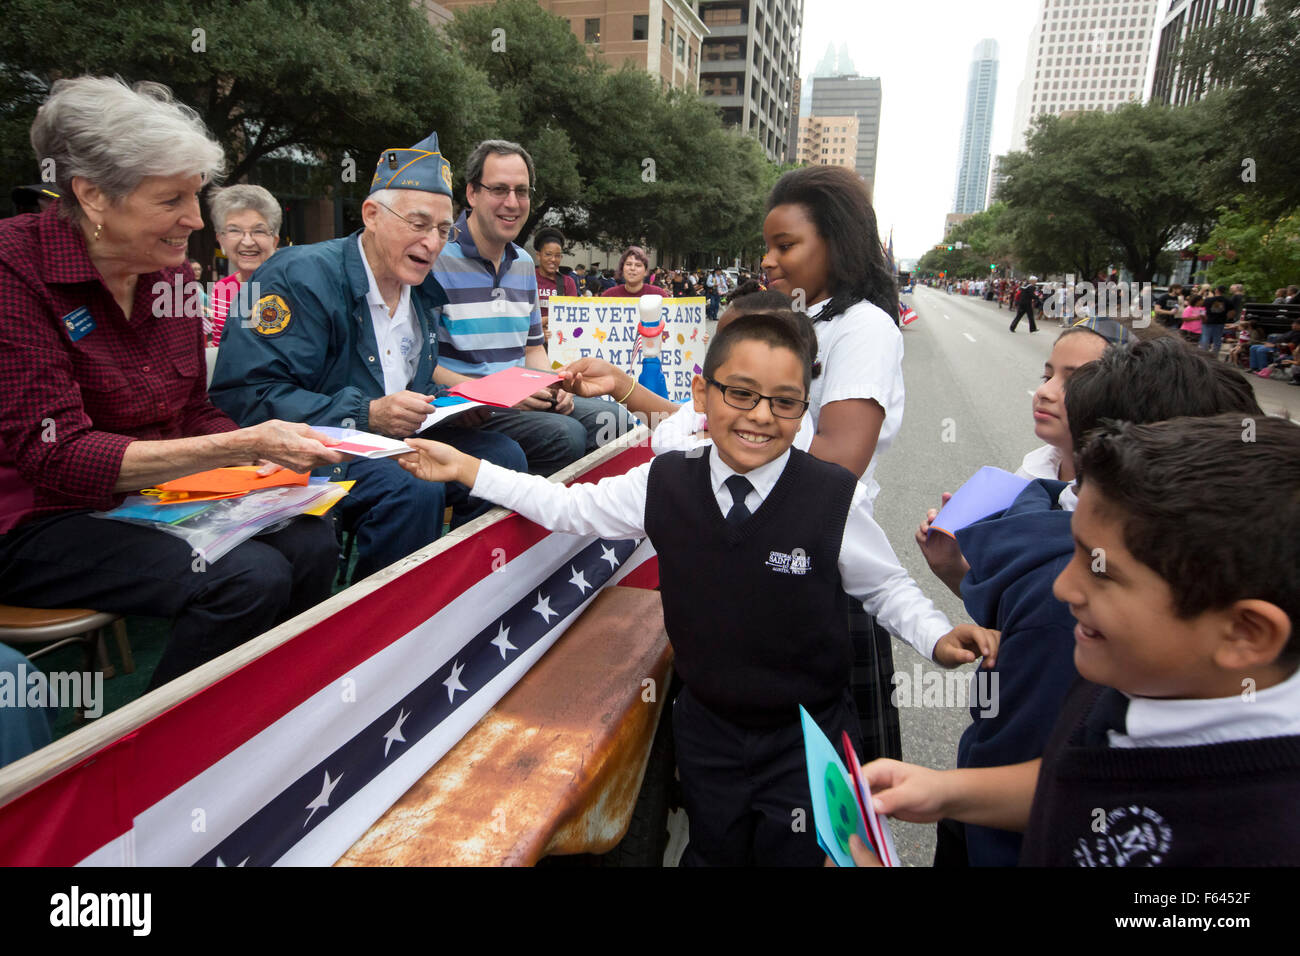 Elementary school aged children give out hand-made cards to military veterans during the Veteran's Day parade - Stock Image